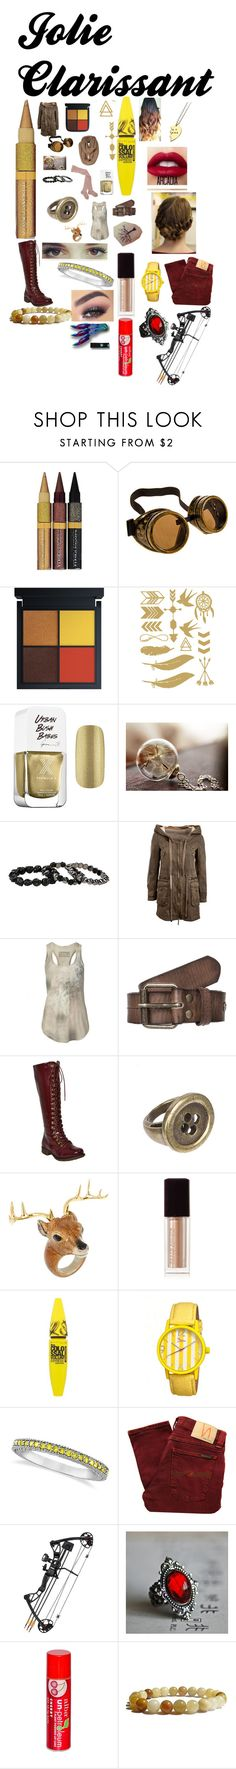 """""""Jolie the Brown eyed Chick!"""" by thepinkandpurplerainbow ❤ liked on Polyvore featuring Physicians Formula, Formula X, AllSaints, Scotch Shrunk, Forever 21, Nach Bijoux, Kevyn Aucoin, Lime Crime, Maybelline and Boum"""